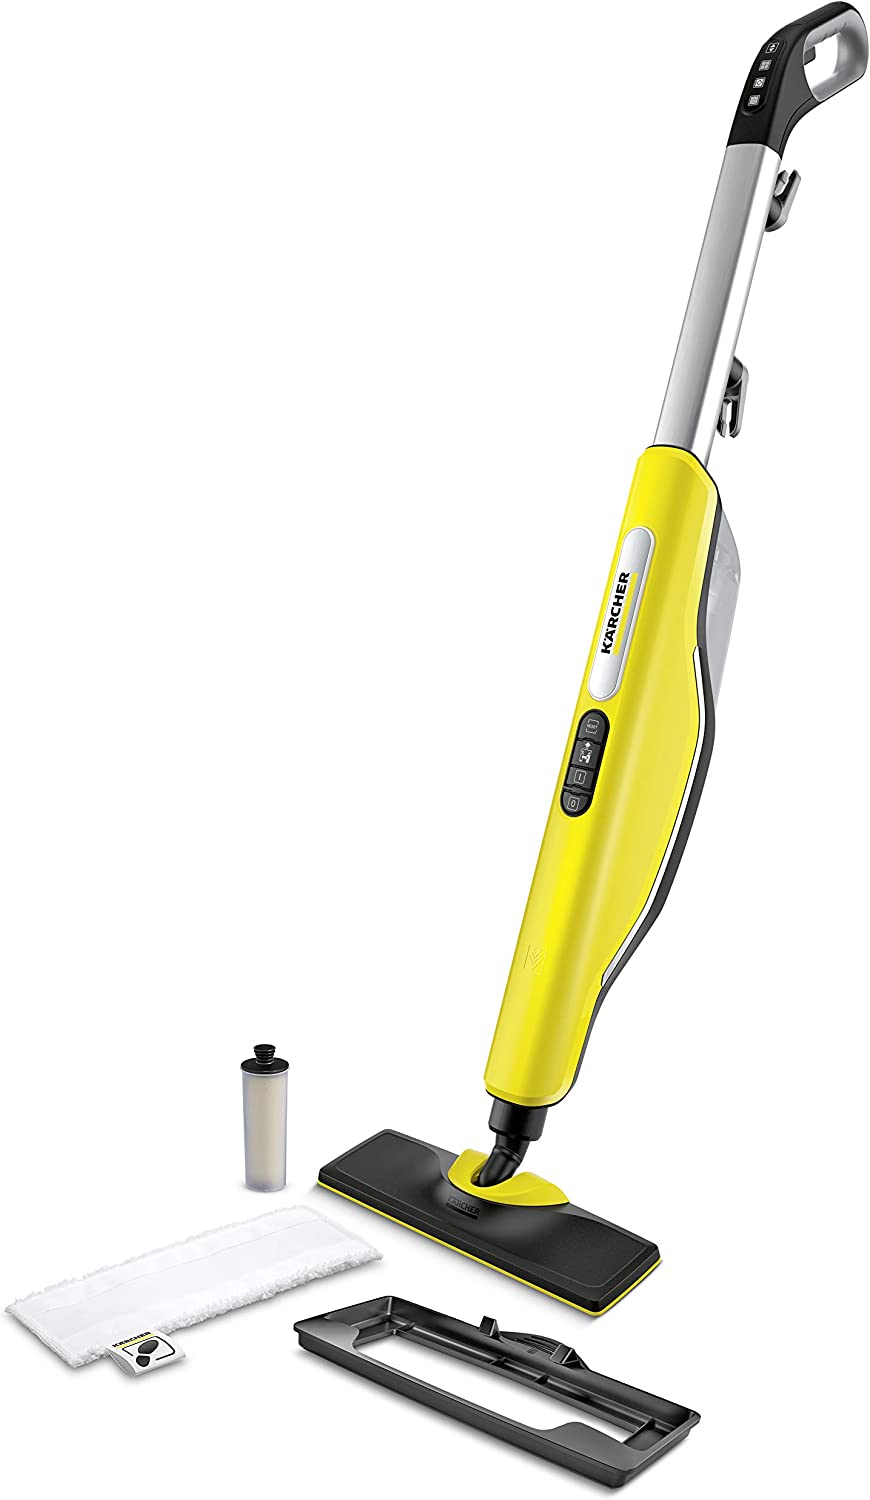 Kärcher SC3 Easyfix Upright Steam Mop